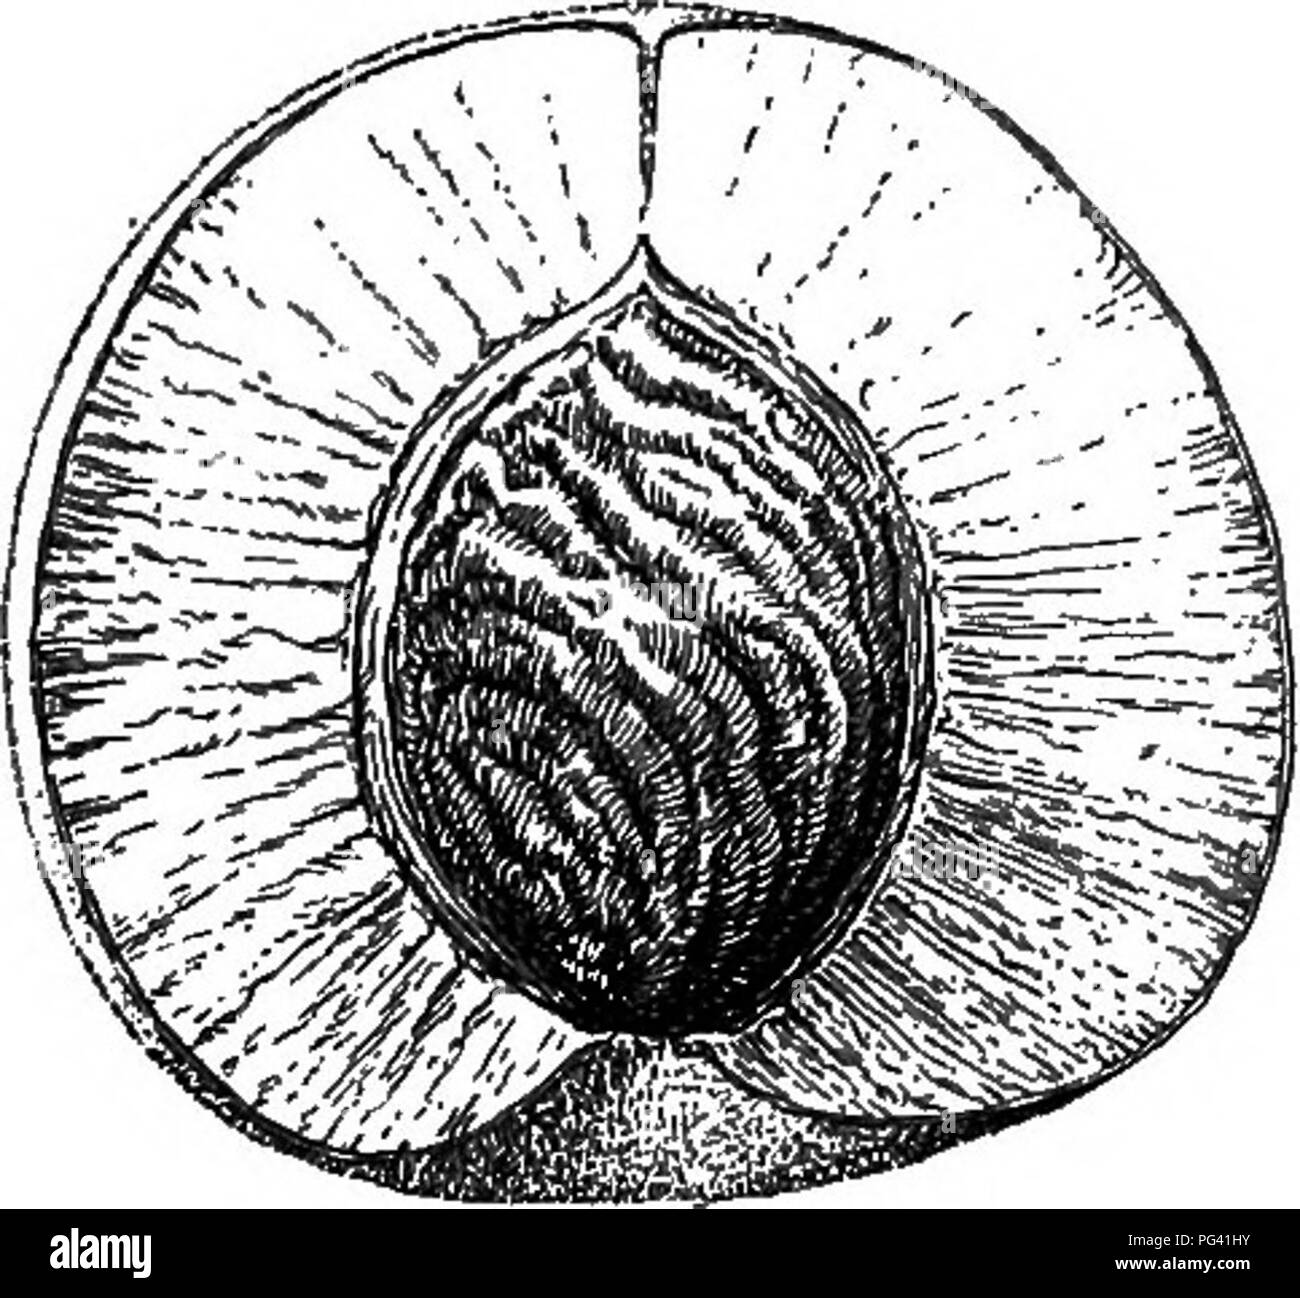 . Foundations of botany. Botany; Botany. 224 FOUNDATIONS OF BOTANY 241. Dry Fruits and Fleshy Fruits. — In all the cases discussed or described in Sects. 238-240, the wall of the ovary (and the adherent calyx when present) ripen into tissues which are somewhat hard and dry. Often, how- ever, these parts become developed into a juicy or fleshy mass by which the seed is surrounded; hence a general division of fruits into dry fruits and fleshy fruits. 242. The Stone-Fruit. — In the peach, apricot, plum, and cherry, the pericarp or wall of the ovary, during the proc- ess of ripening, becomes con-  - Stock Image